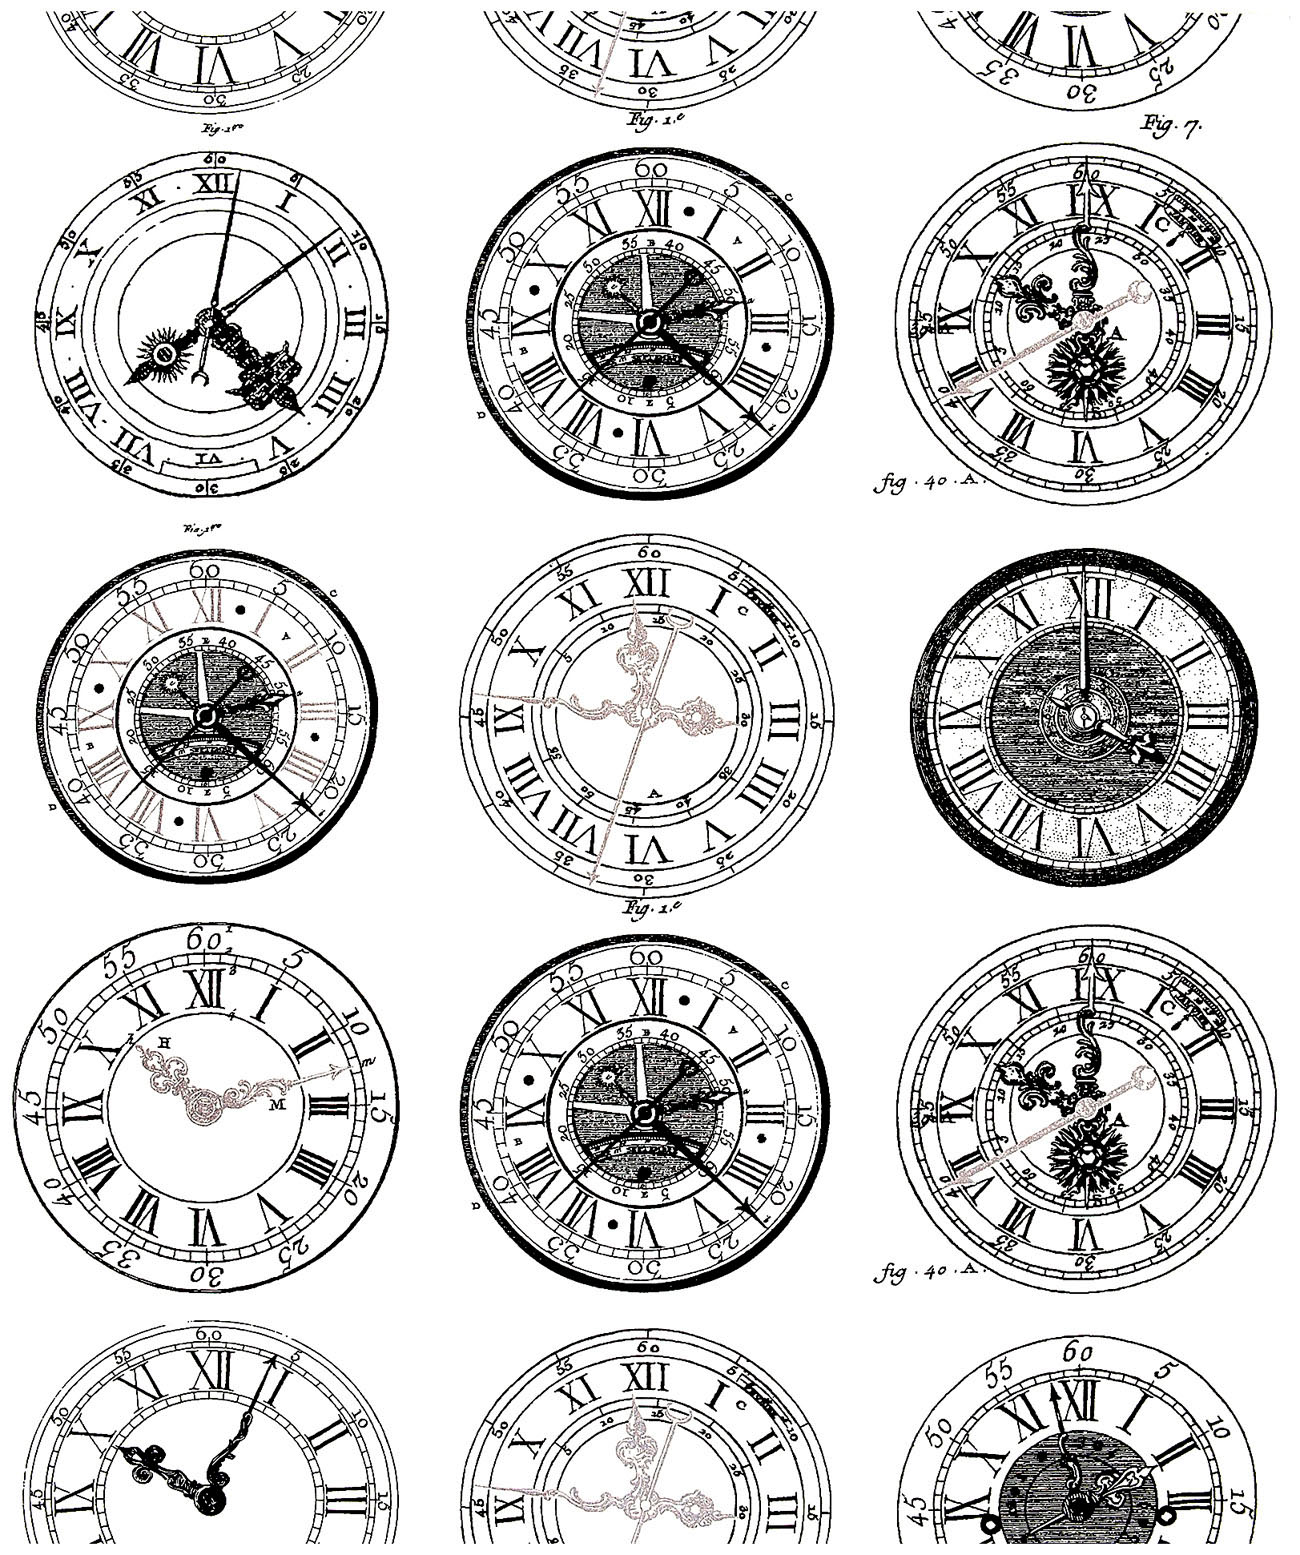 Various styles of watches dating from the 19th and 20th century